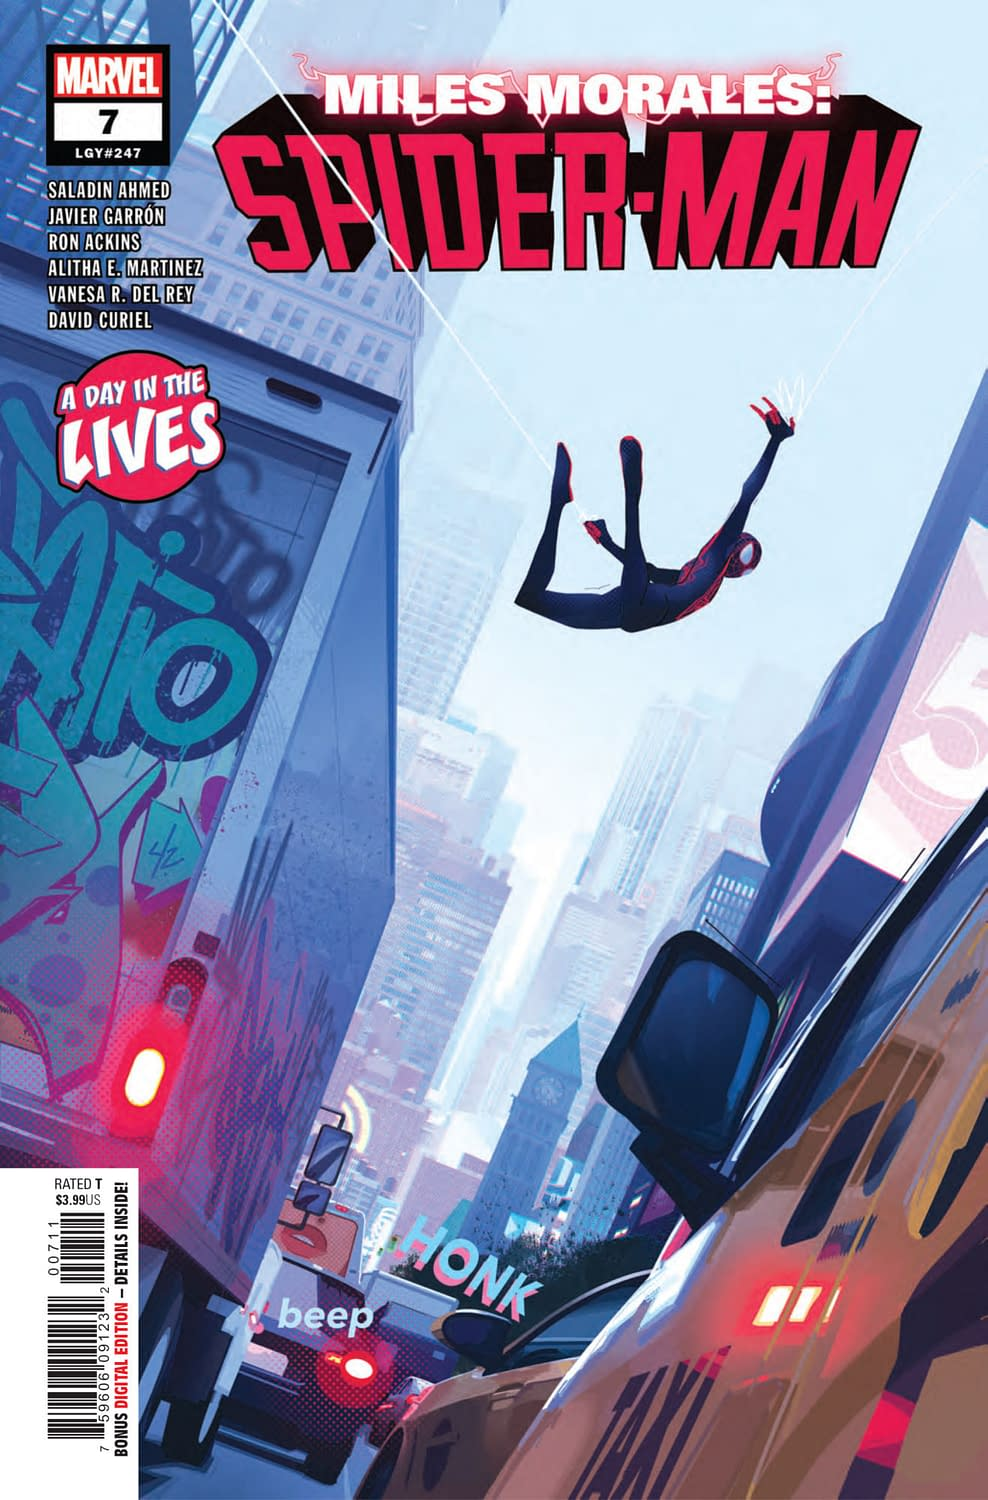 Snitching on Uncle Prowler in Miles Morales: Spider-Man #7 (Preview)